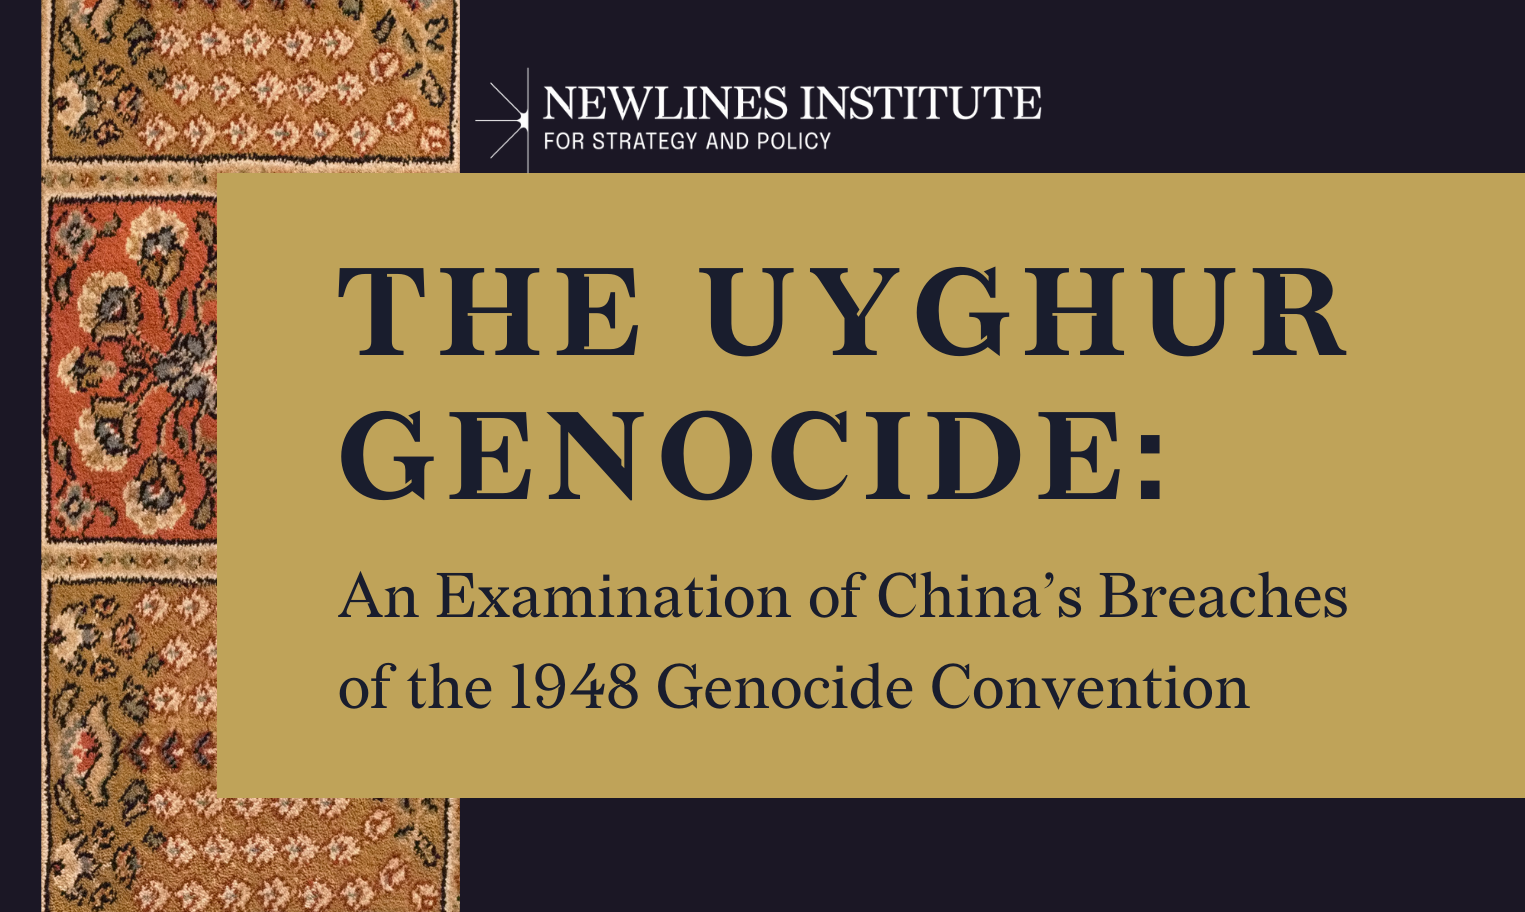 The Uyghur Genocide: An Examination of China's Breaches of the 1948 Genocide Convention